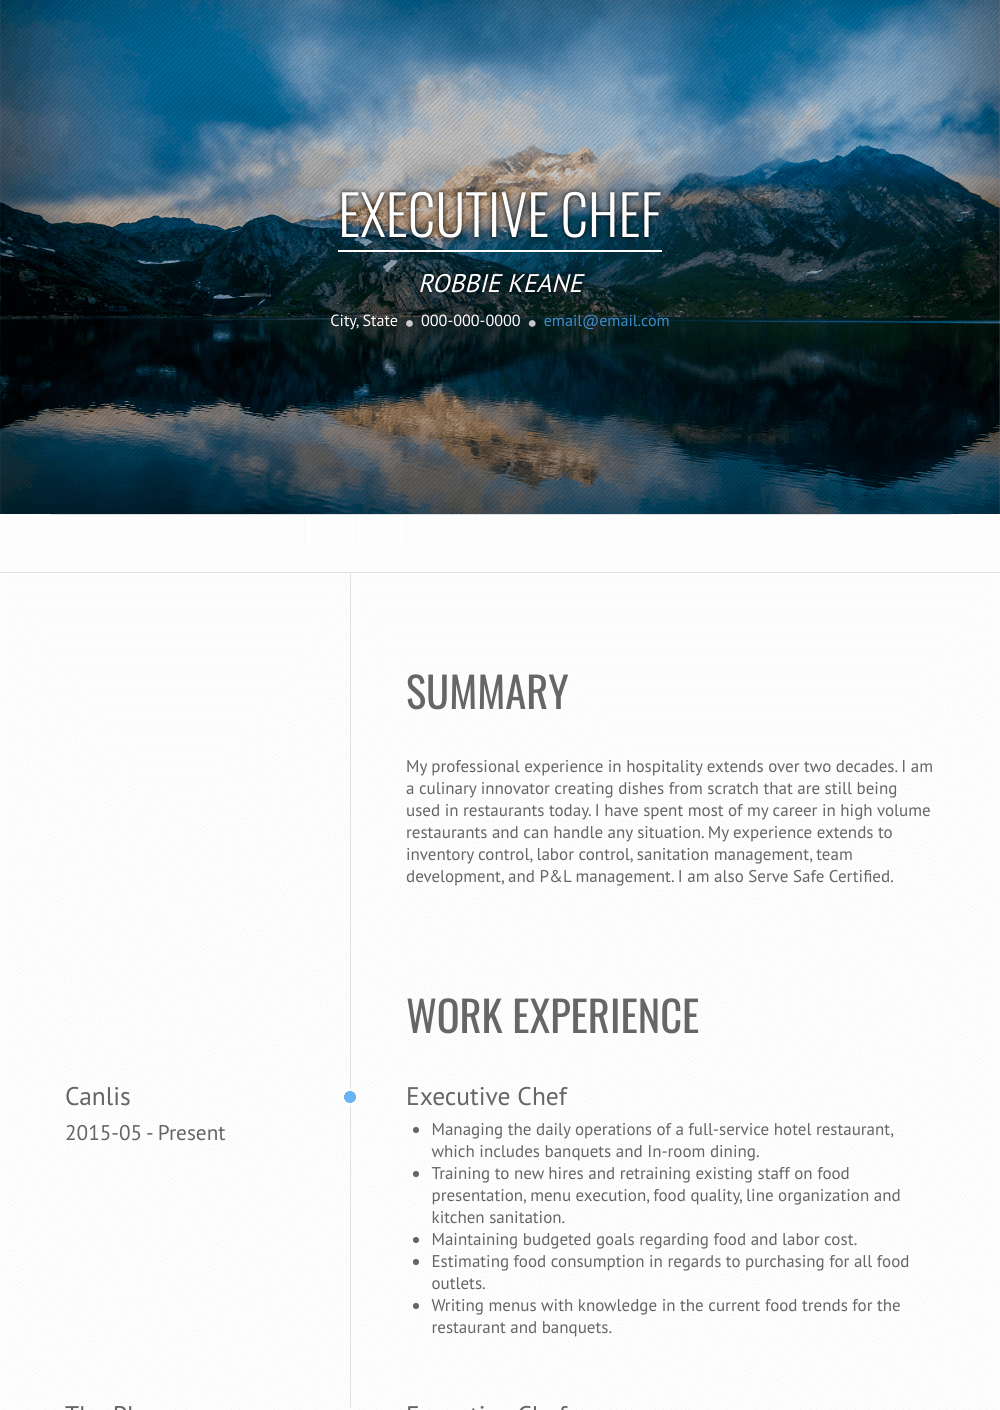 Chef Resume Samples And Templates Visualcv